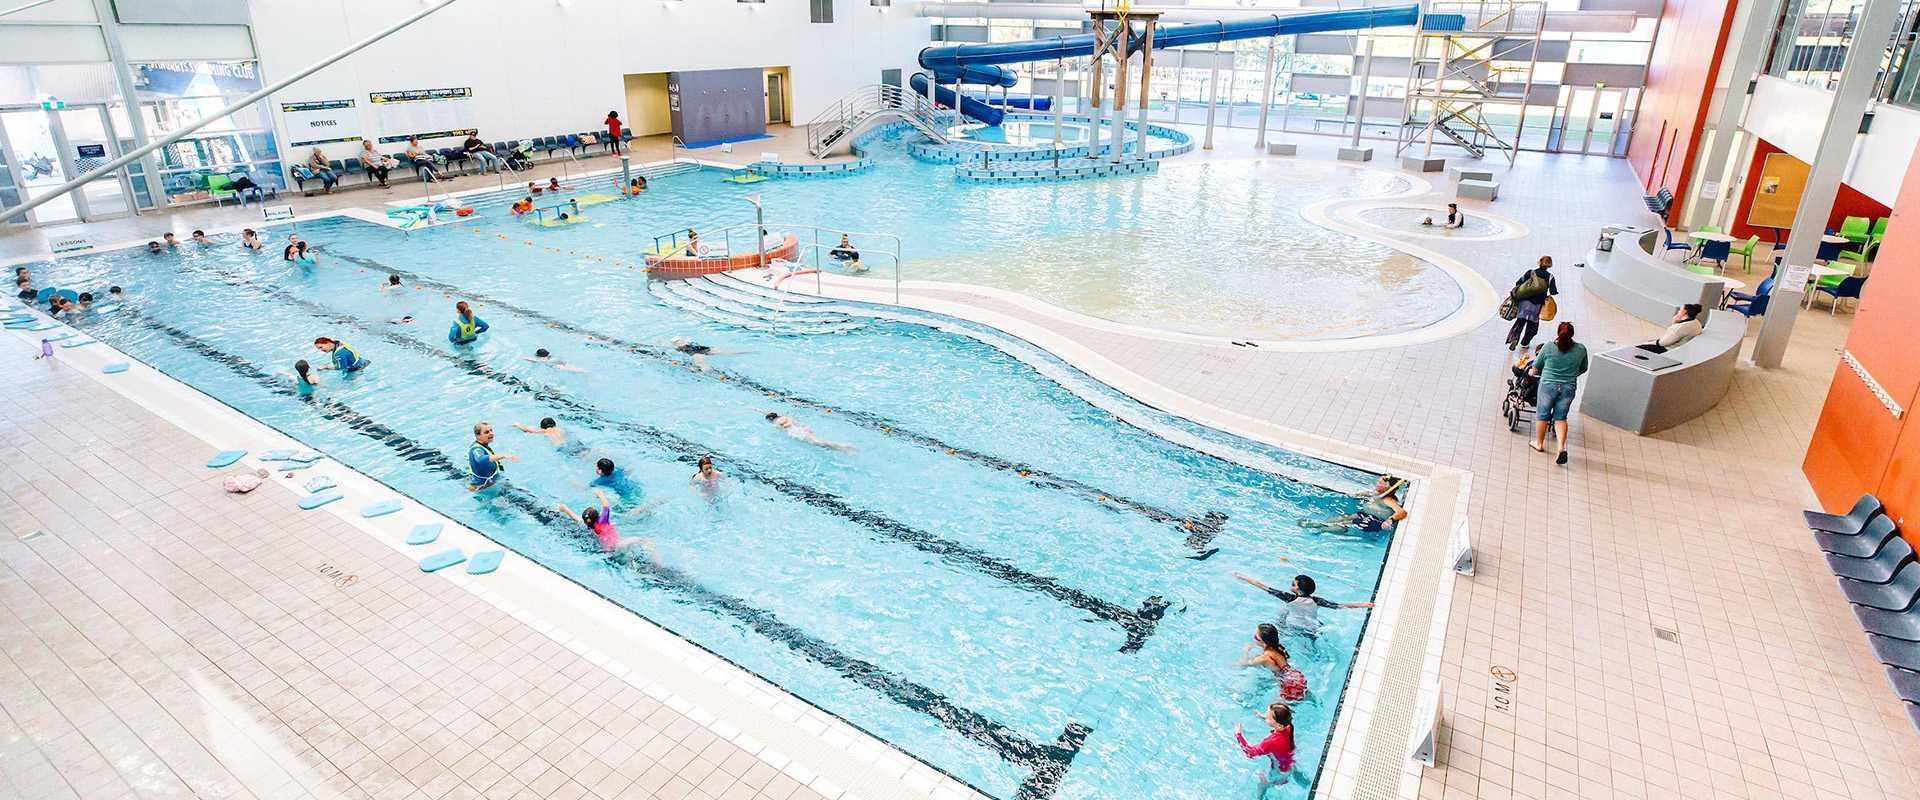 Commercial cleaning for leisure facilities.